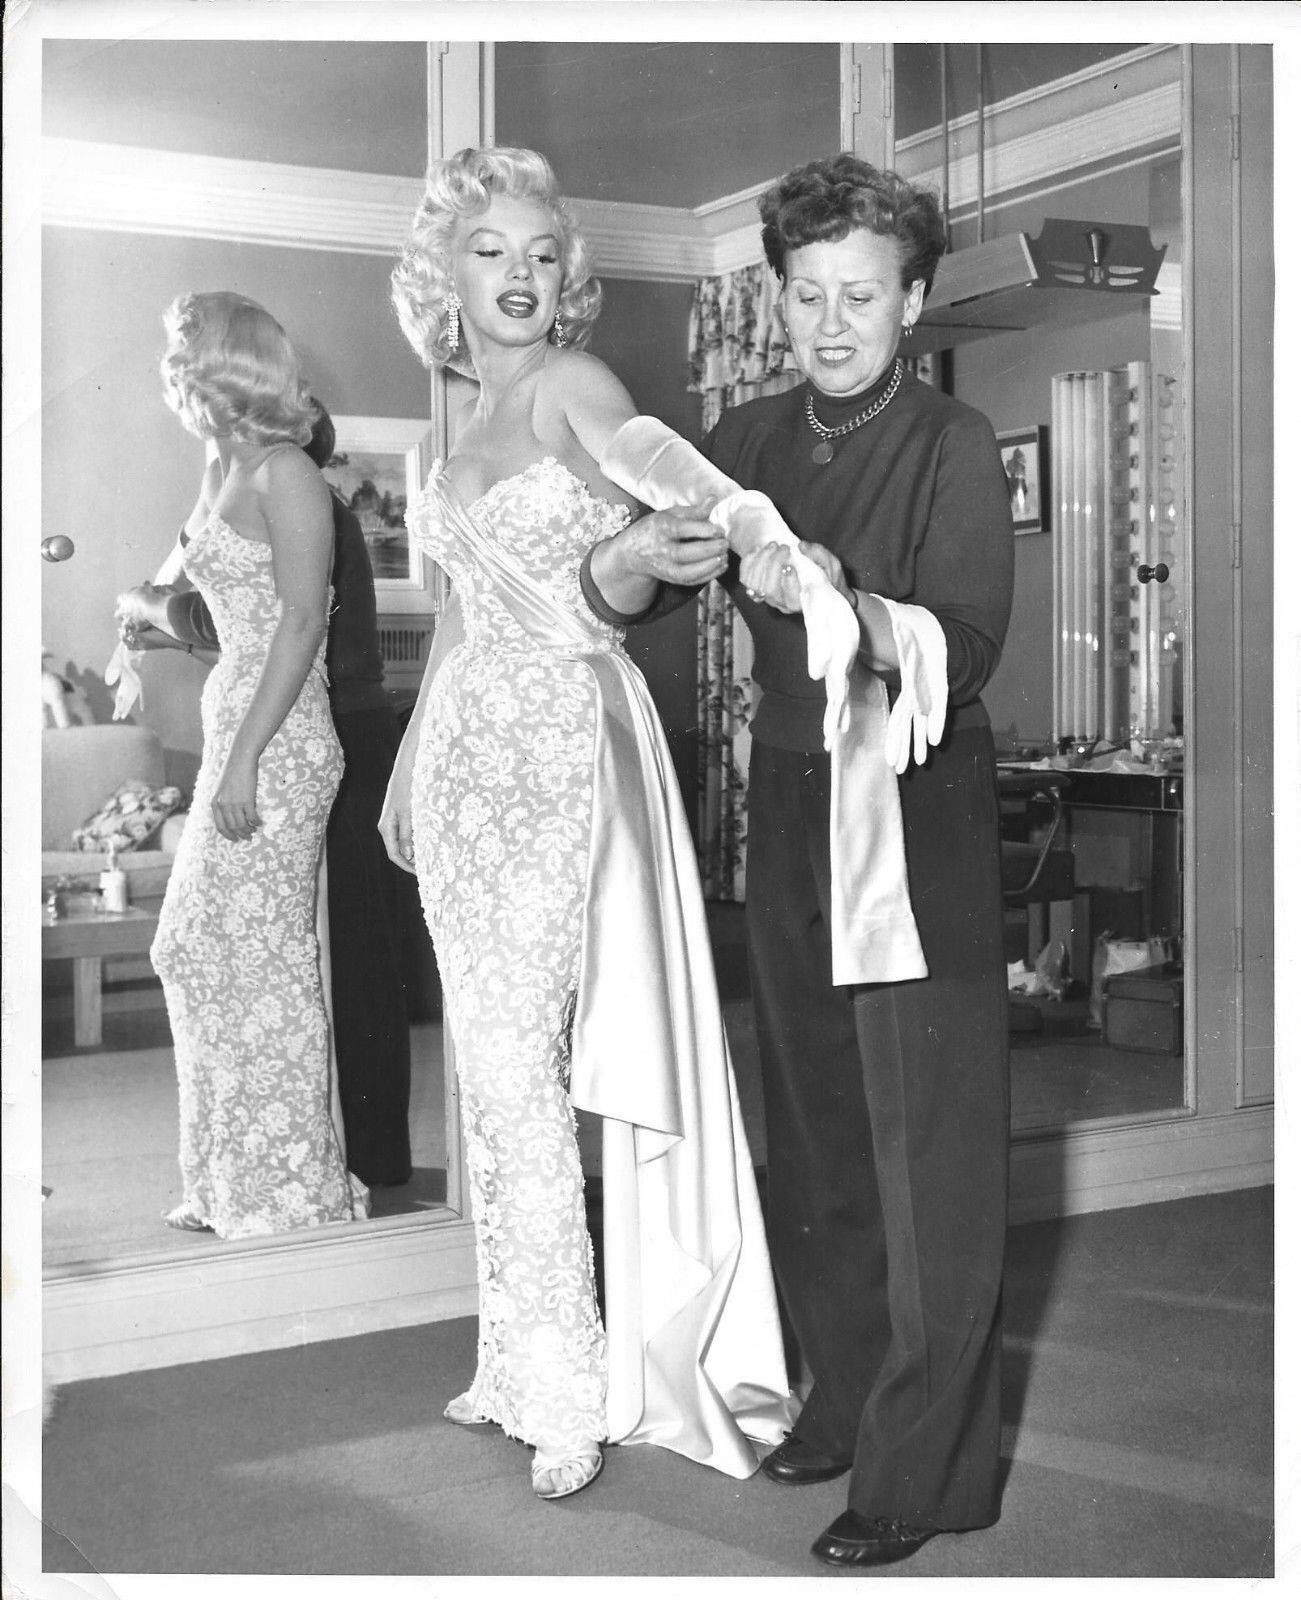 Marilyn Monroe getting a little help with her ensemble for the premiere of How to Marry a Millionaire, 1953.